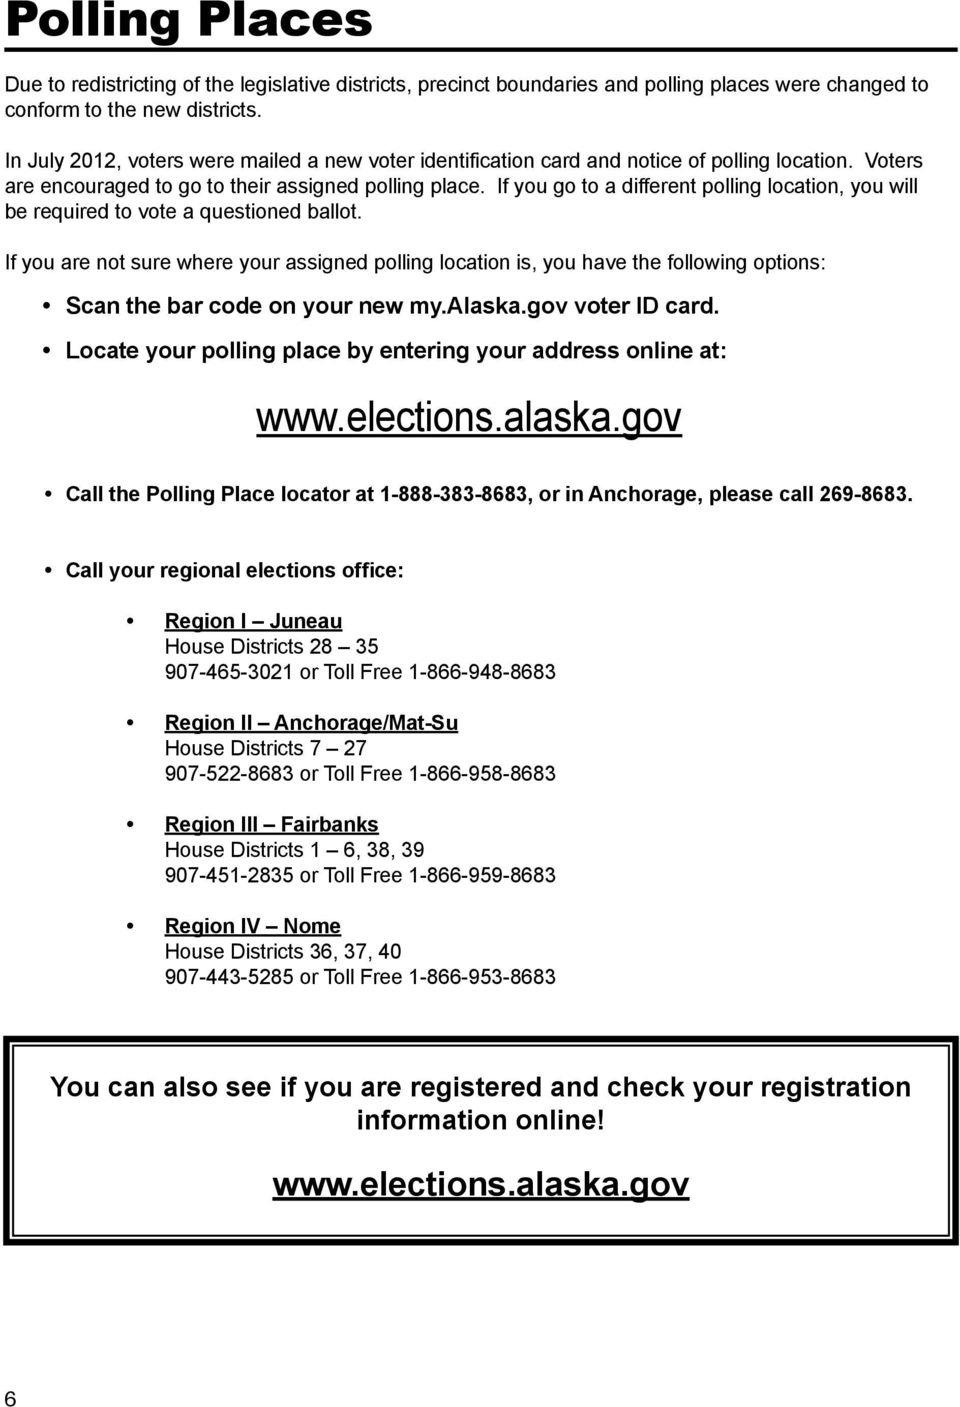 If you go to a different polling location, you will be required to vote a questioned ballot.